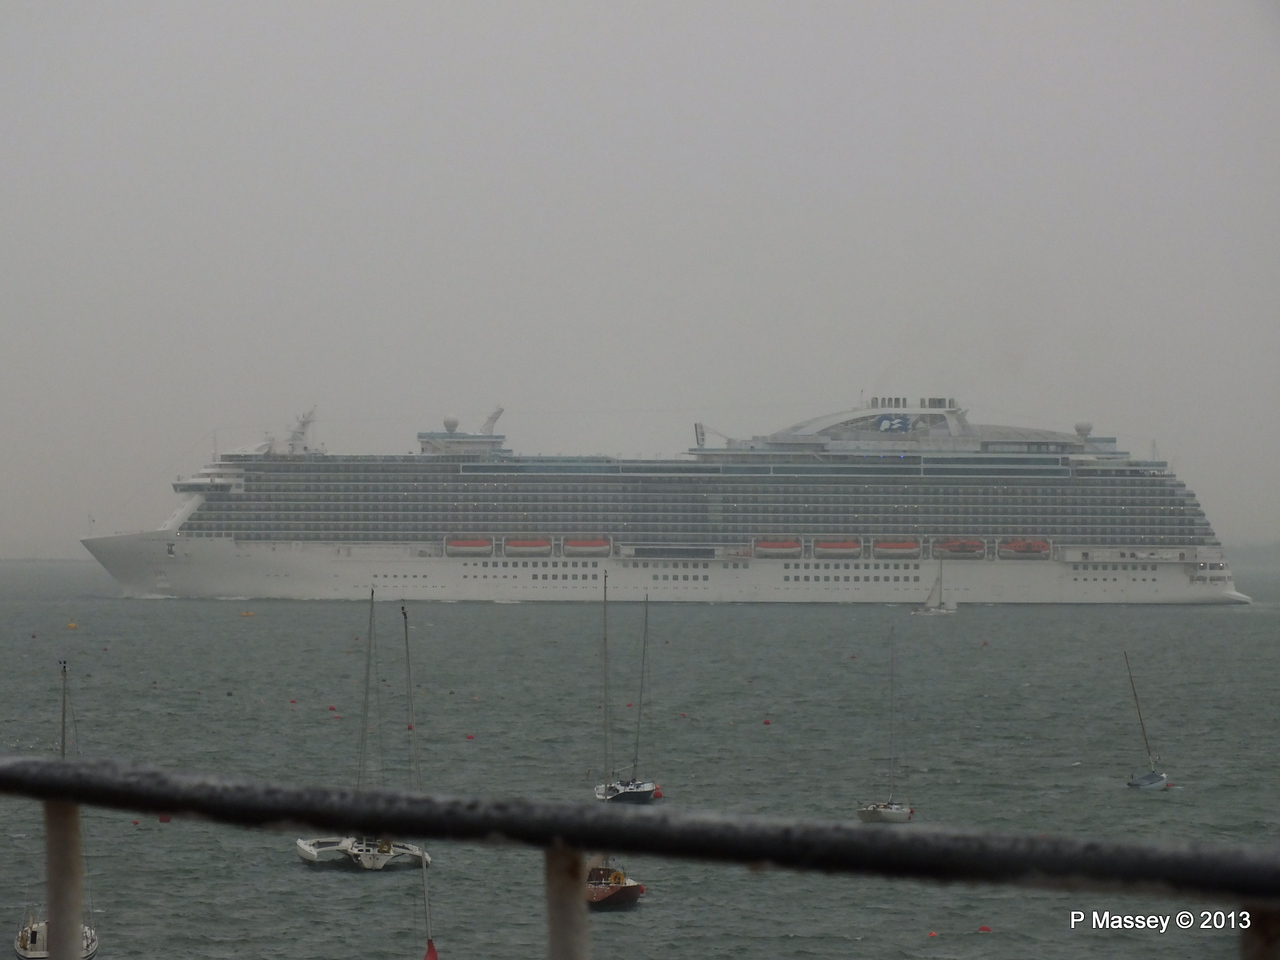 ROYAL PRINCESS Cowes PDM 07-06-2013 10-08-13